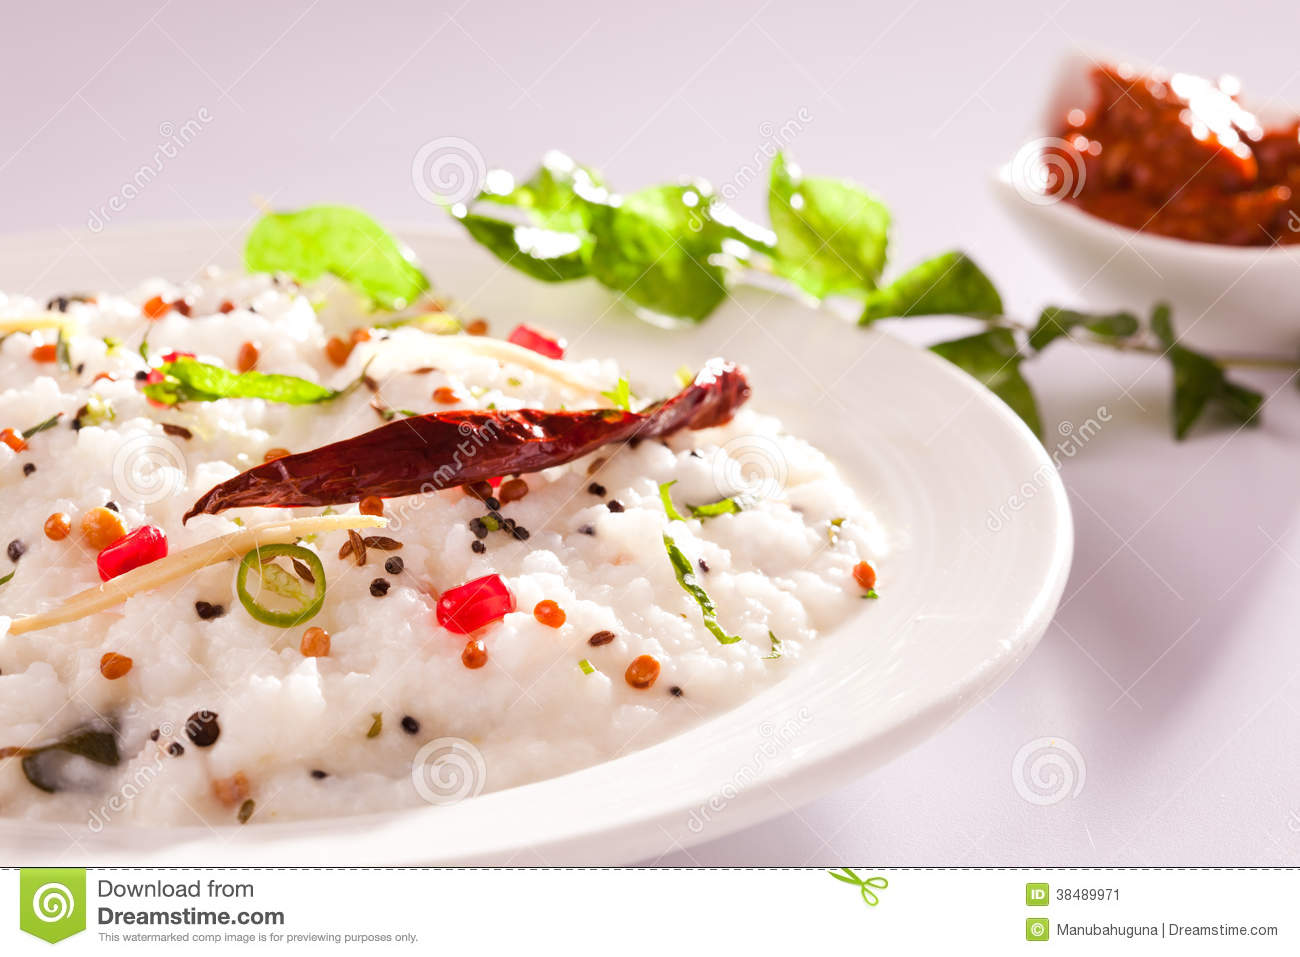 Curd Rice - A Rice mixed with yogurt and seasoning, served with pickle ...